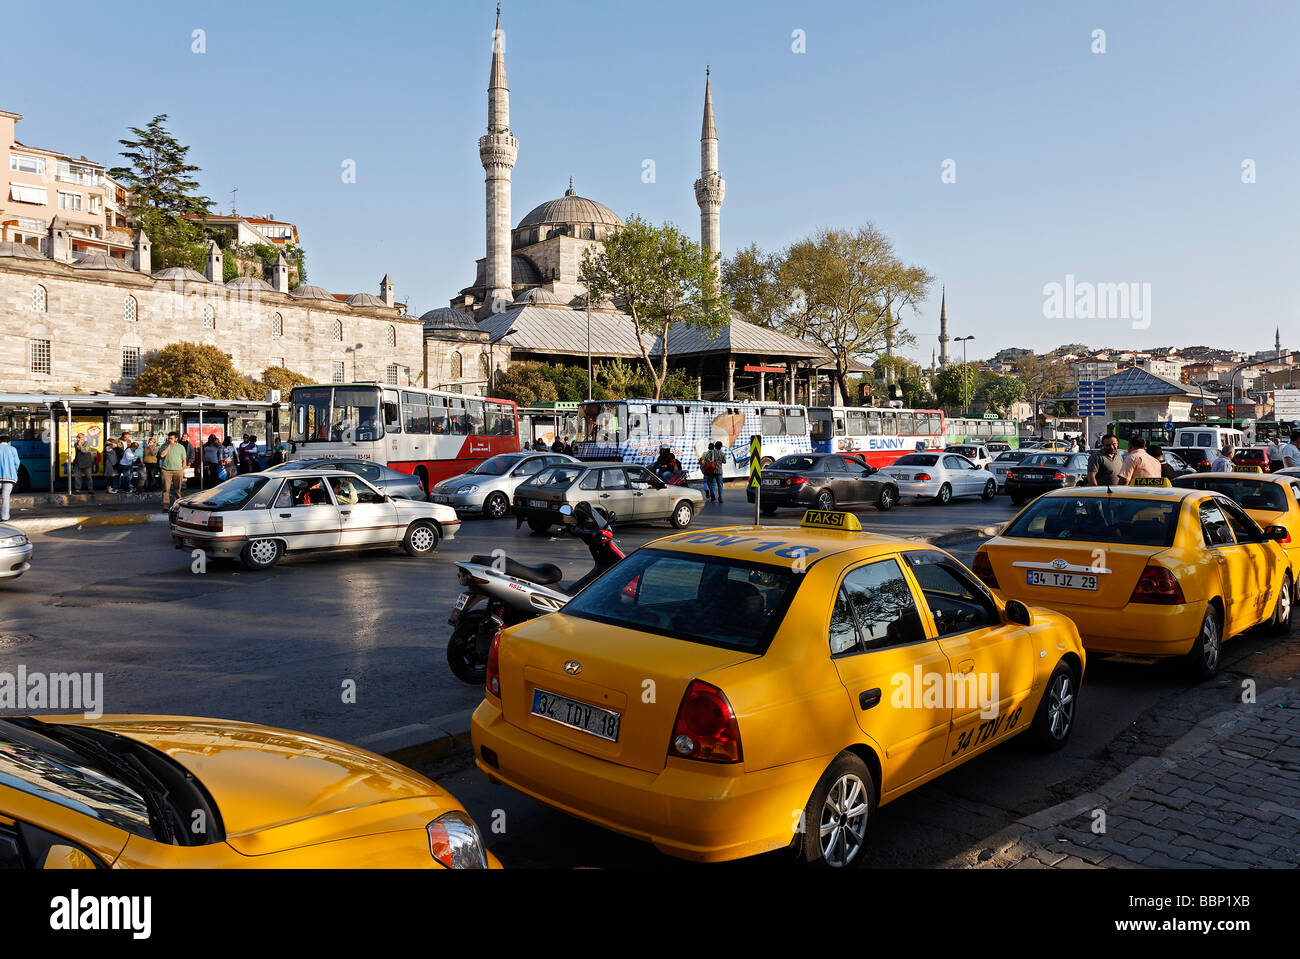 Row of taxis on the main square in Ueskuedar, rush hour, Iskele Mosque, Istanbul, Turkey - Stock Image